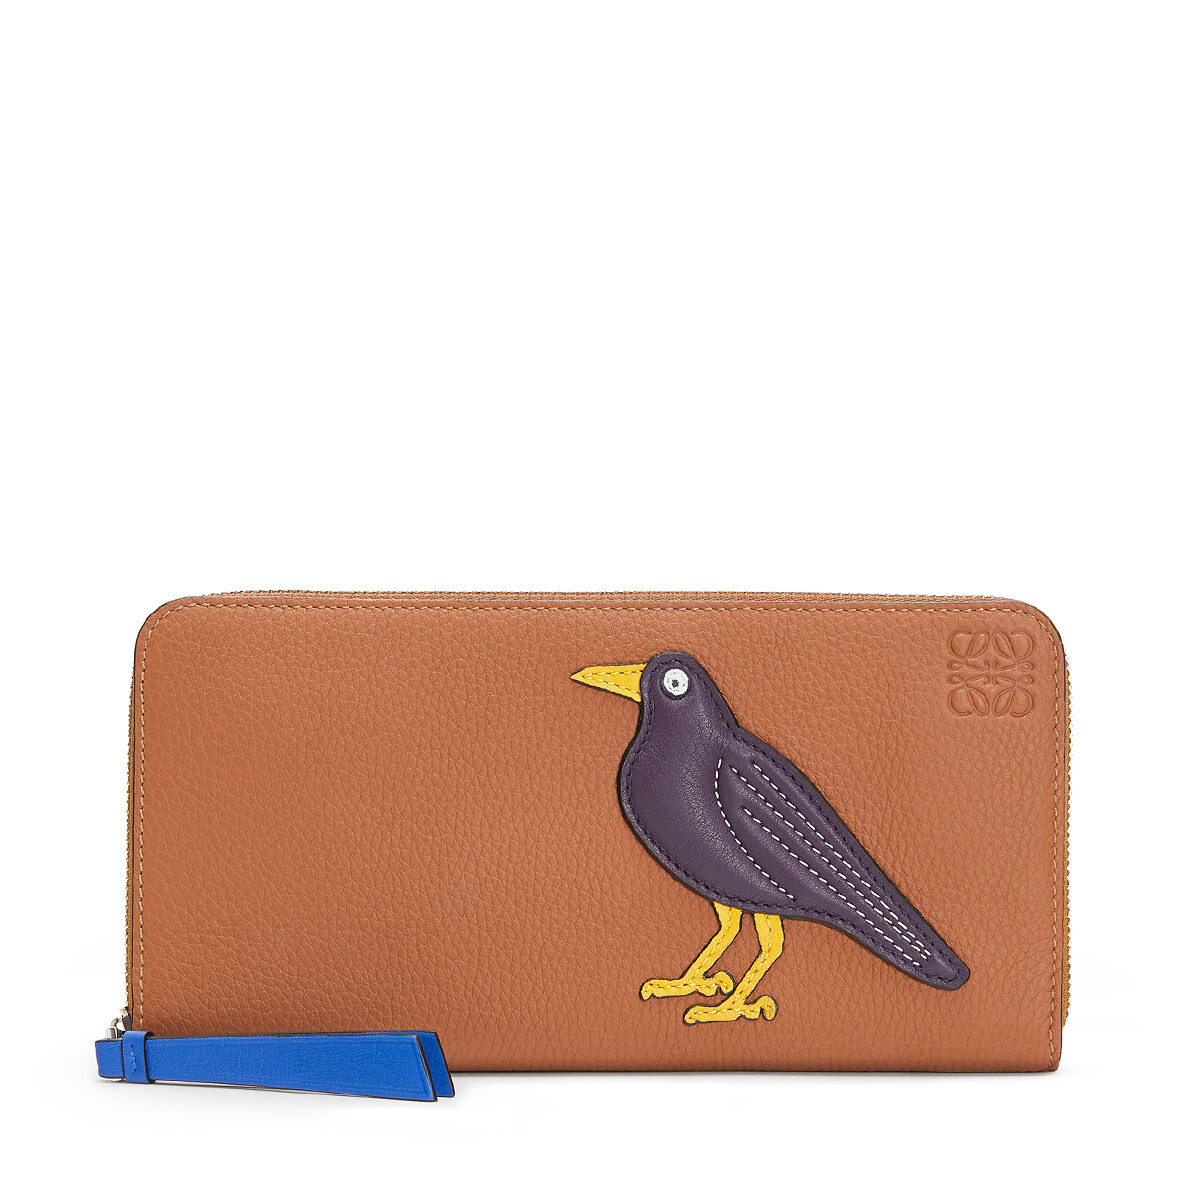 LOEWE Zip Around Wallet Multicolor front